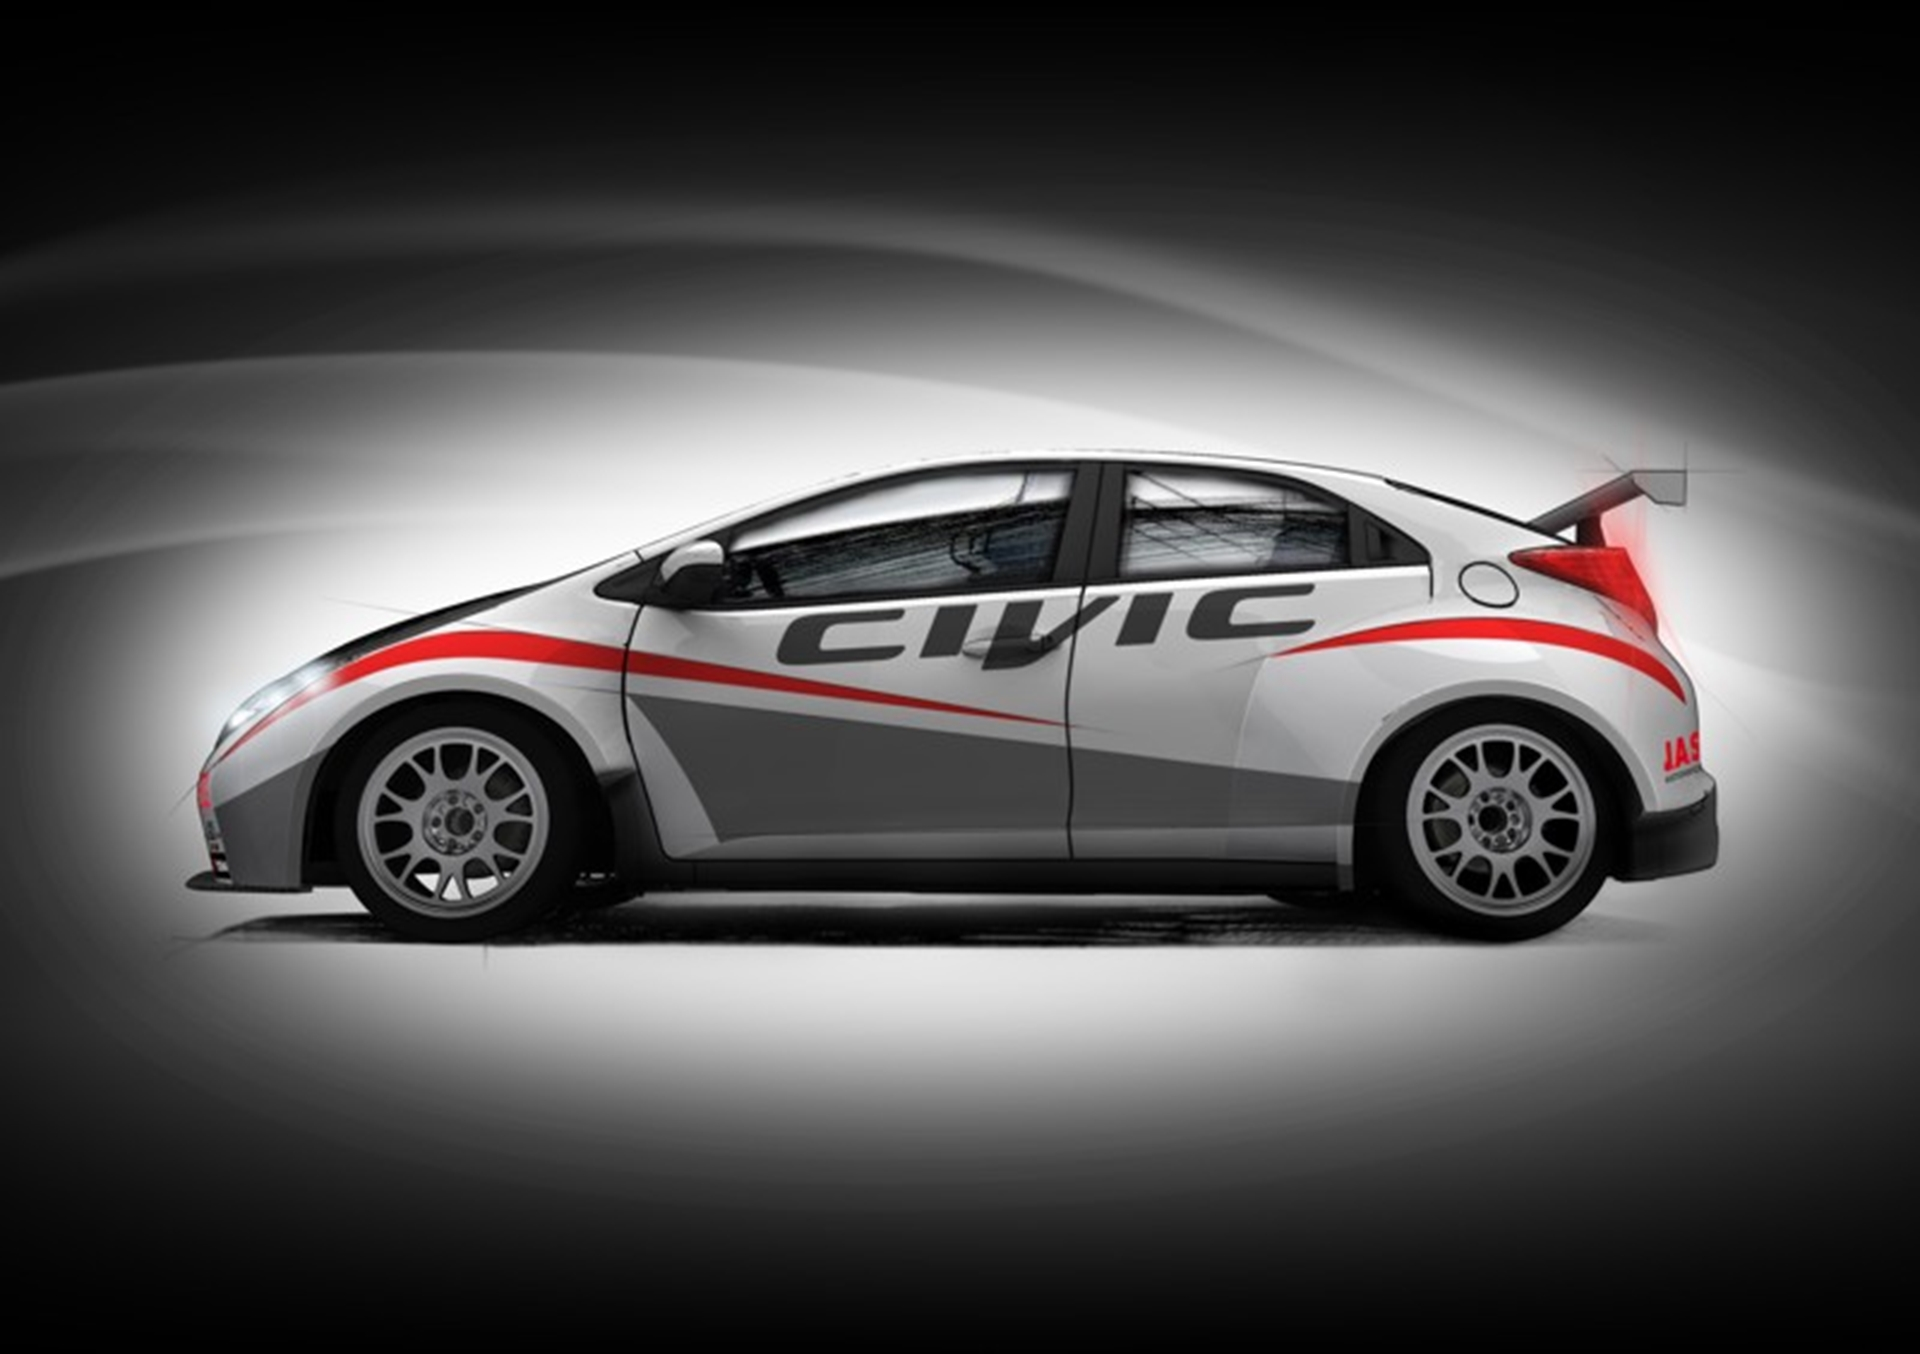 Honda WTCC Civic